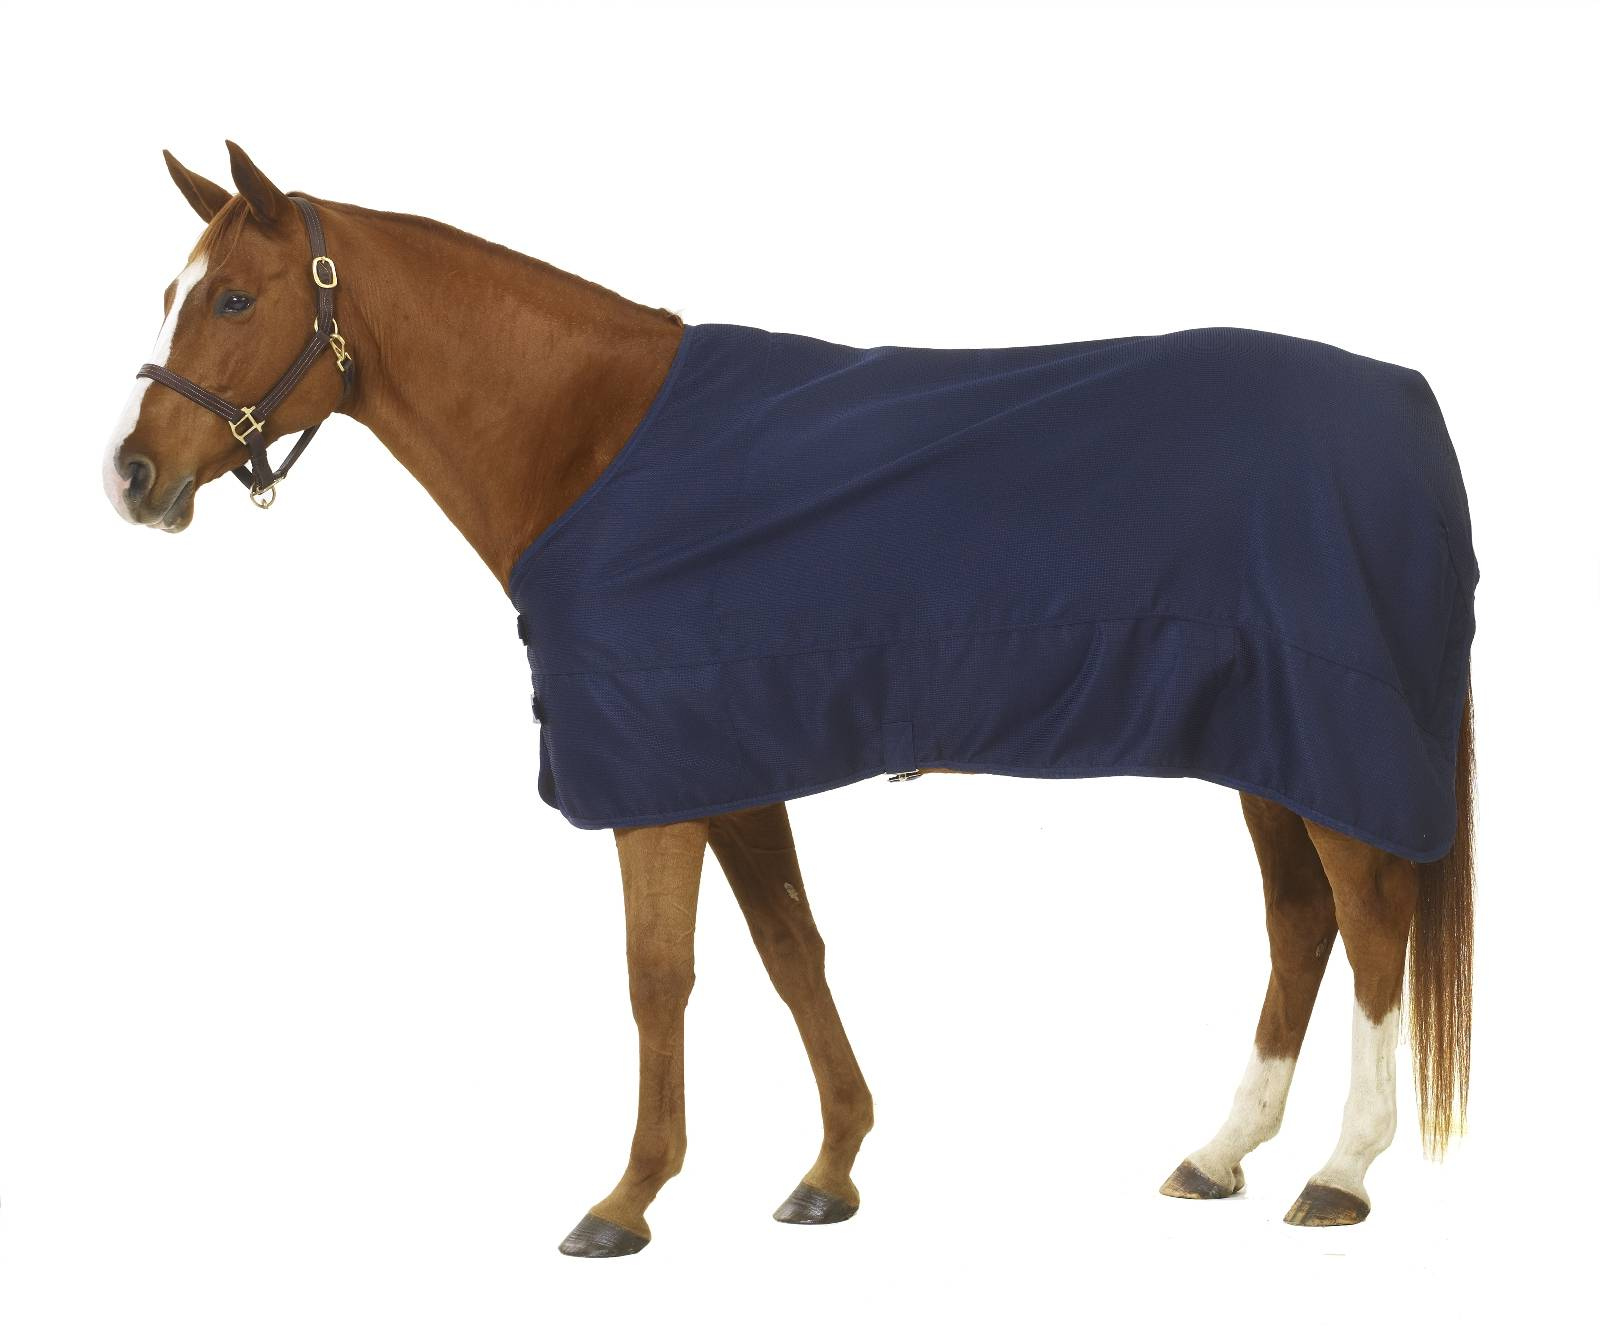 Centaur ThermaDry Stable Sheet